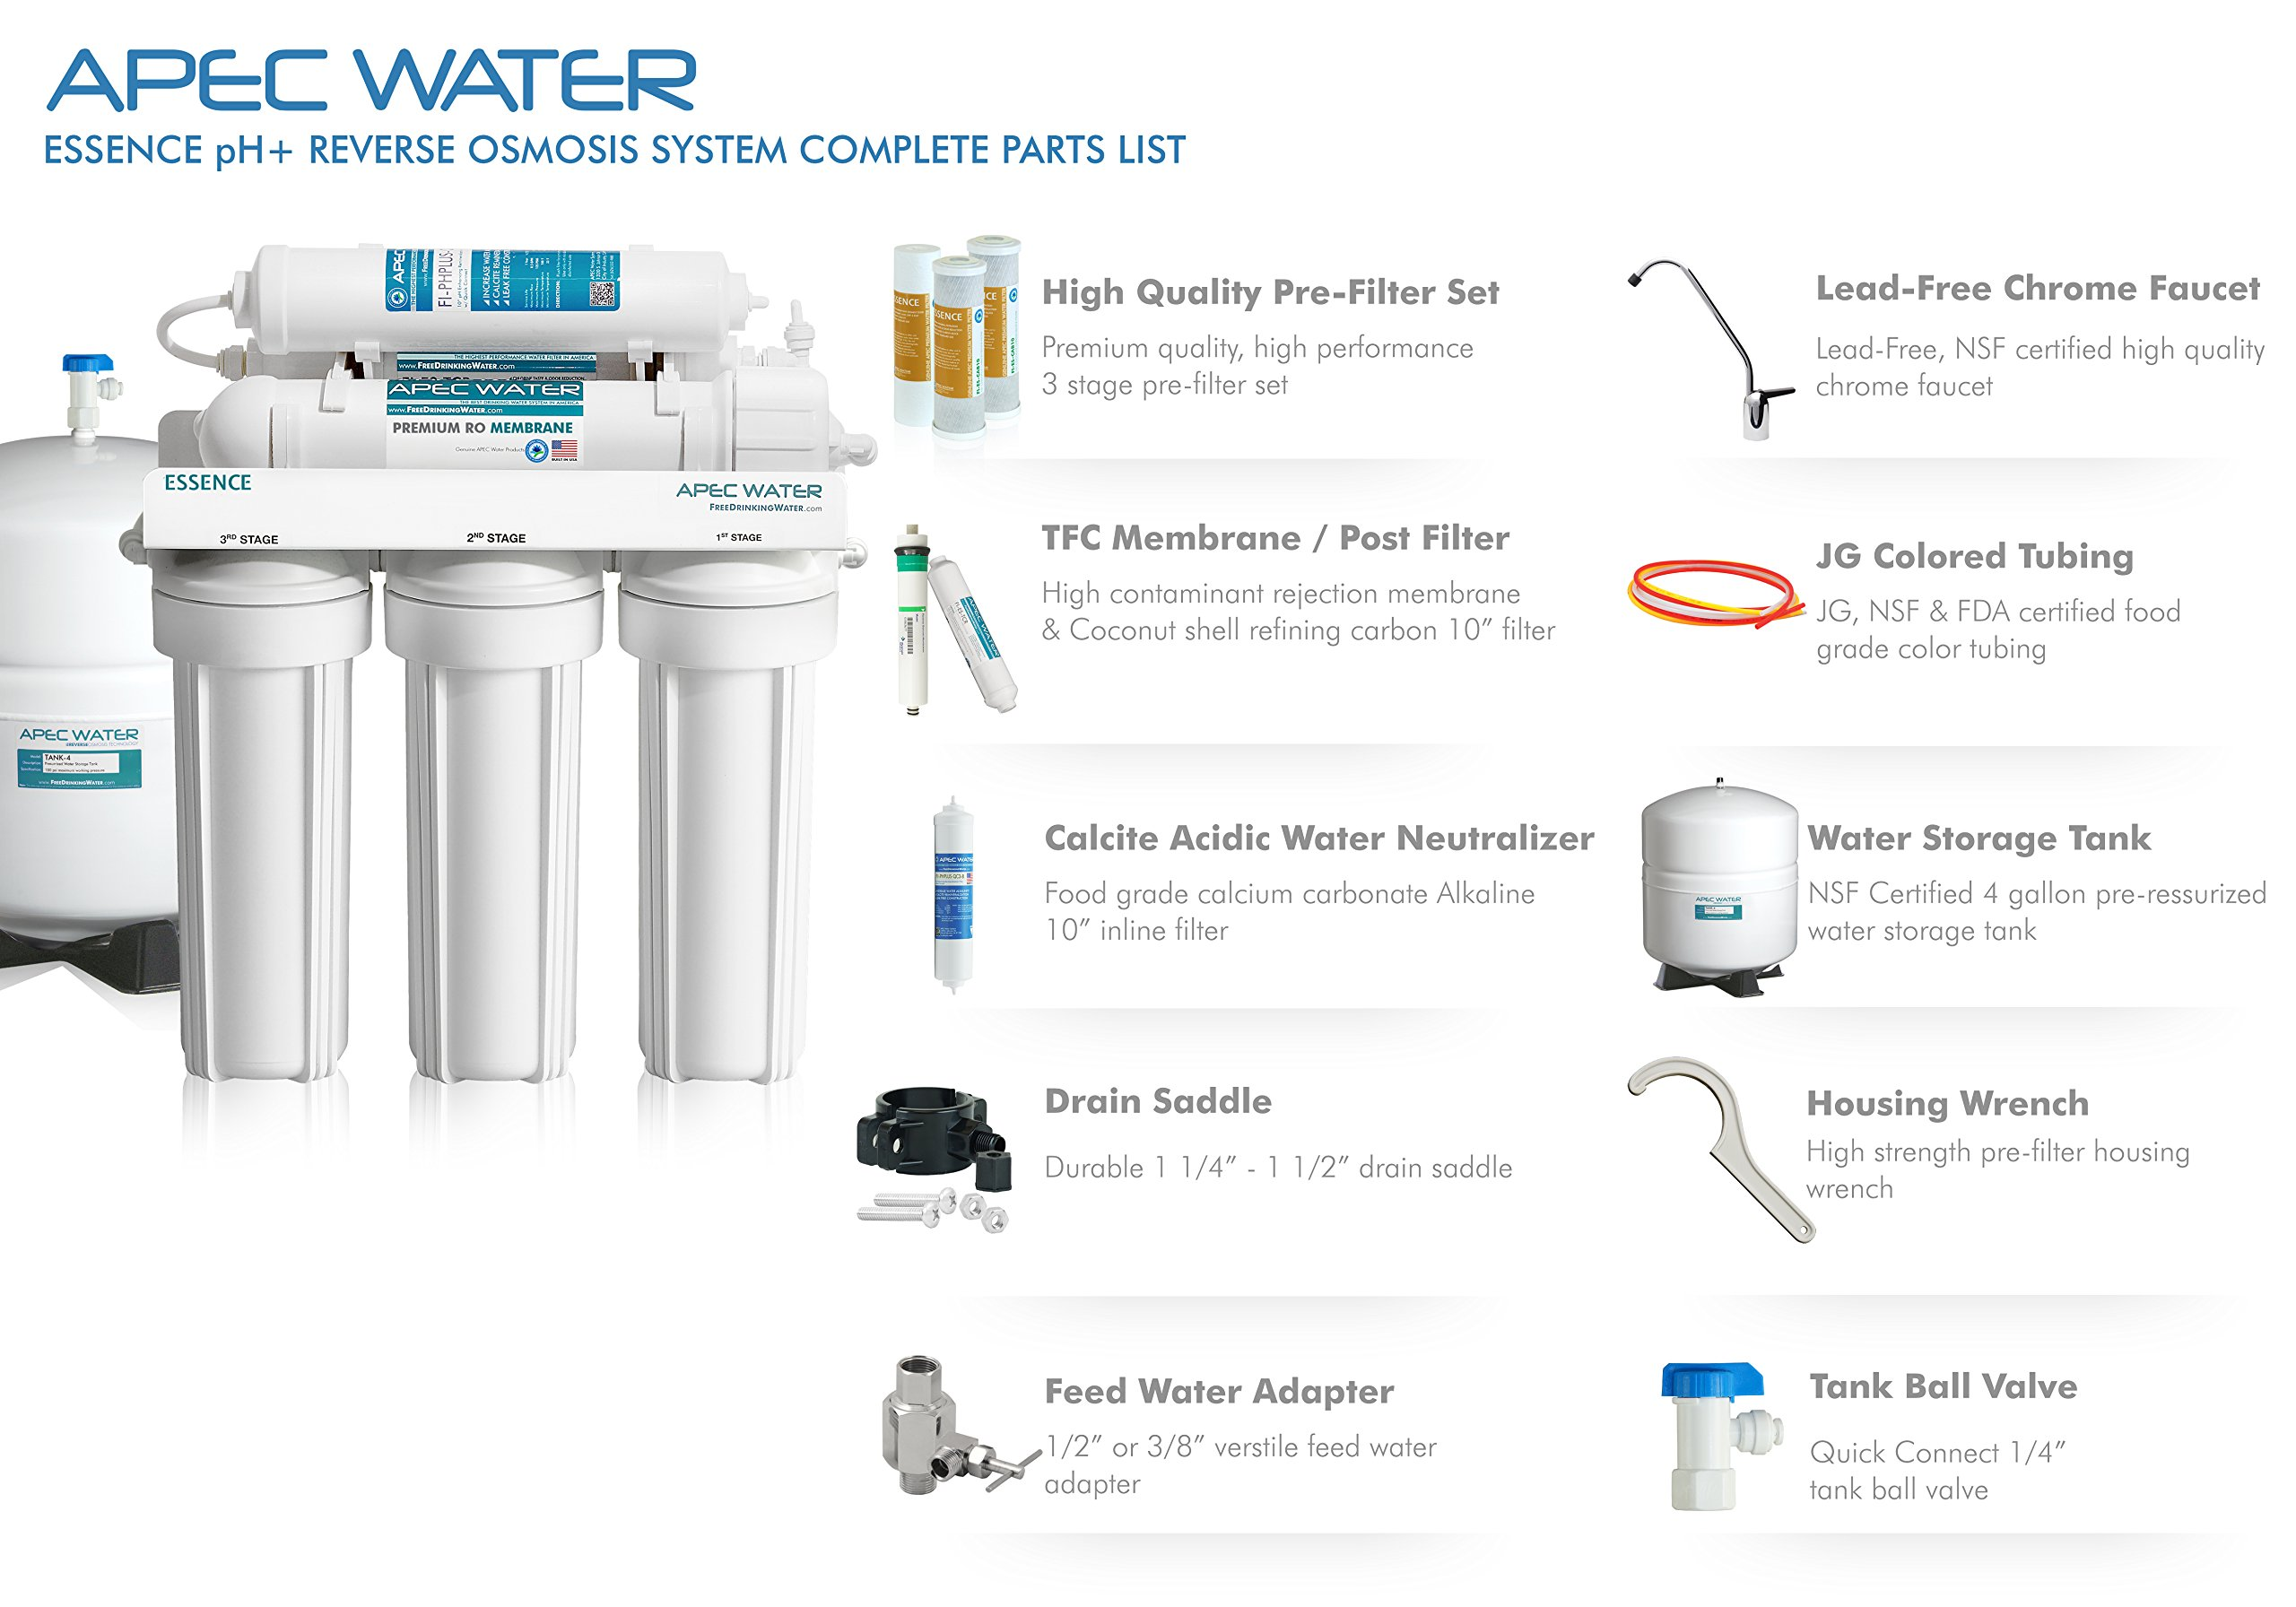 APEC Top Tier Alkaline Mineral pH+ 75 GPD 6-Stage Ultra Safe Reverse Osmosis Drinking Water Filter System (ESSENCE ROES-PH75) by APEC Water Systems (Image #3)